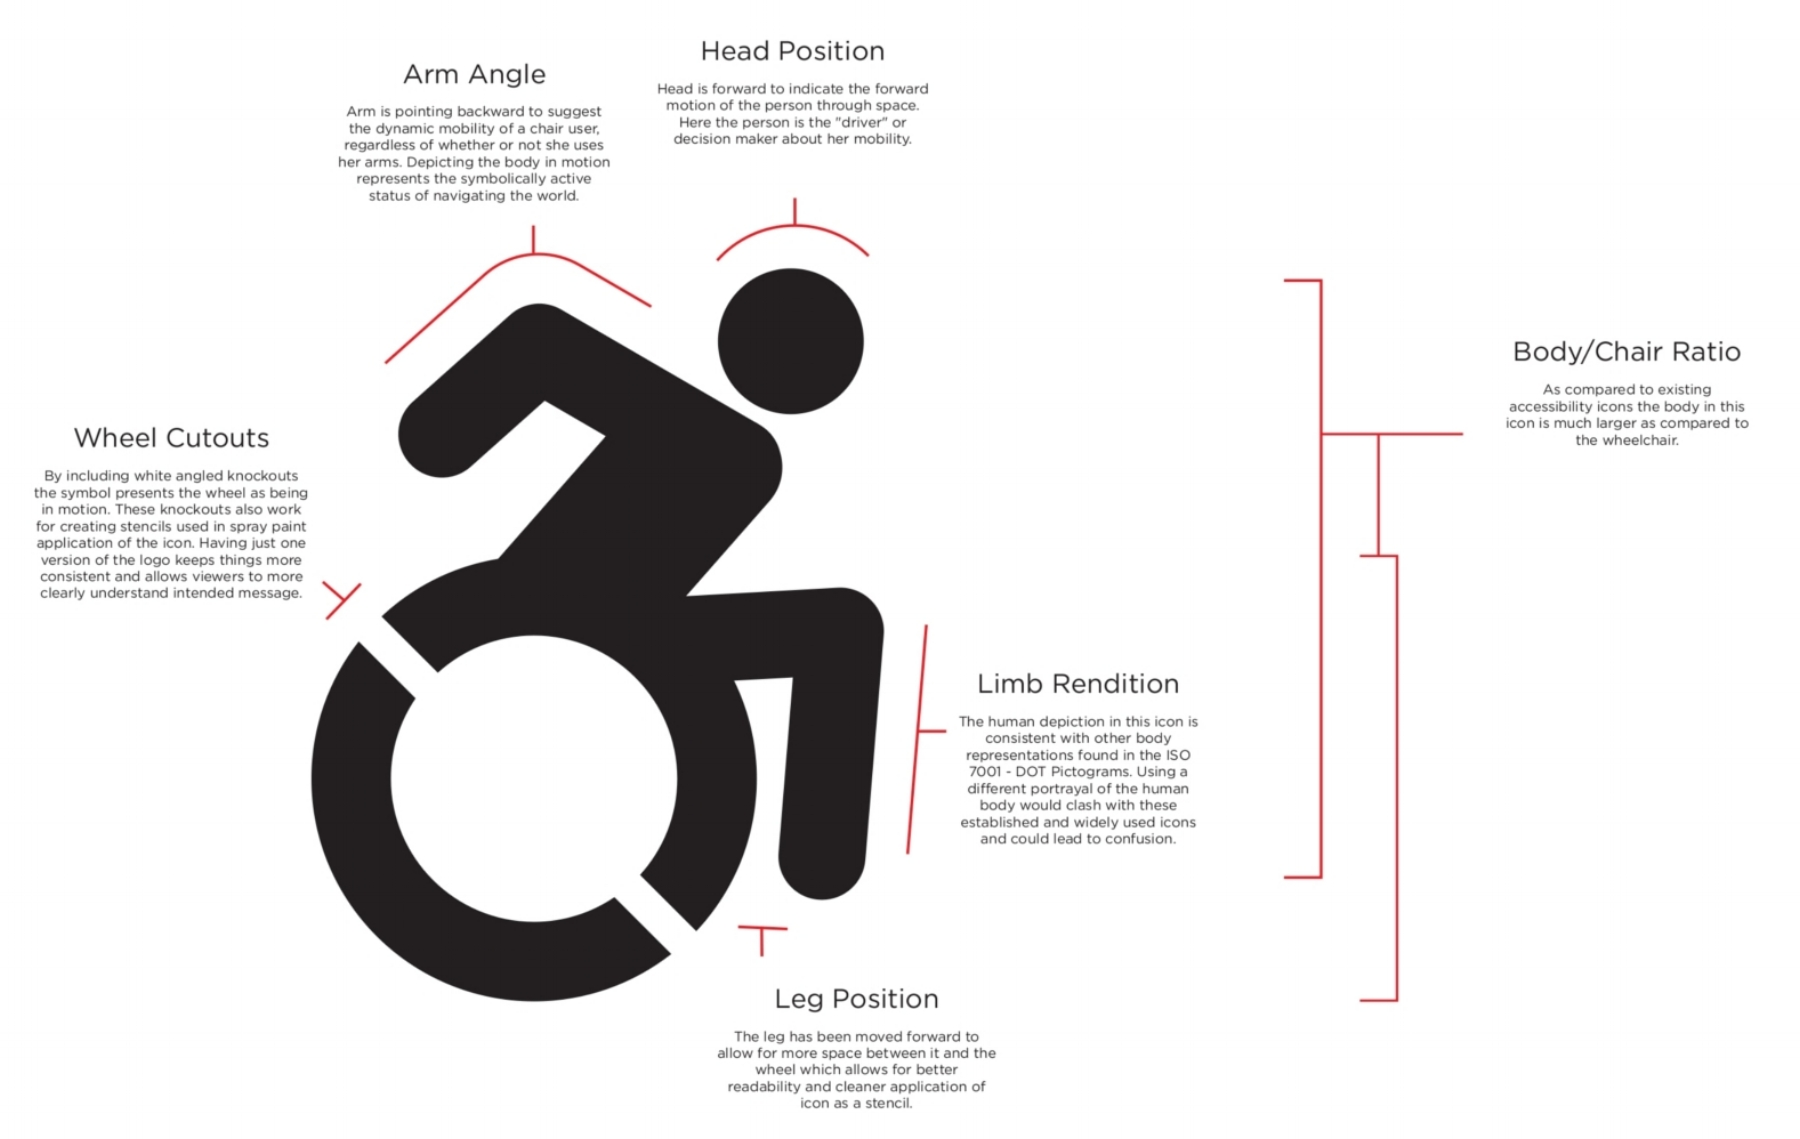 Accessible Icon Final - An opaque symbol of an ISO 50 person leaning forward with wheel cutouts for stenciling and expressing movement.